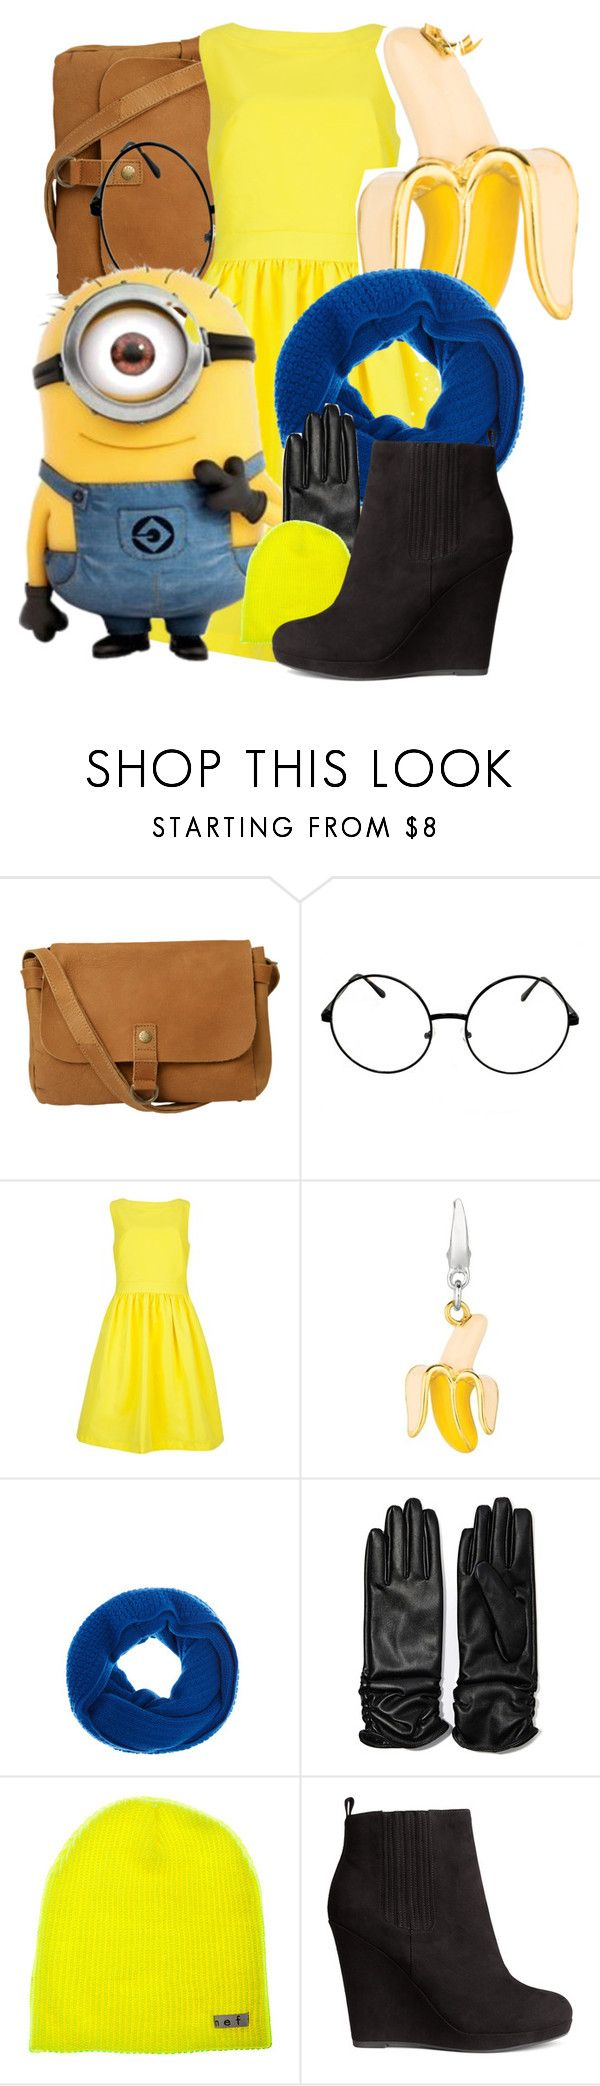 """""""Minion Outfit"""" by god-girl ❤ liked on Polyvore featuring Fat Face, Ted Baker, Warehouse, LULU, Neff and H&M"""